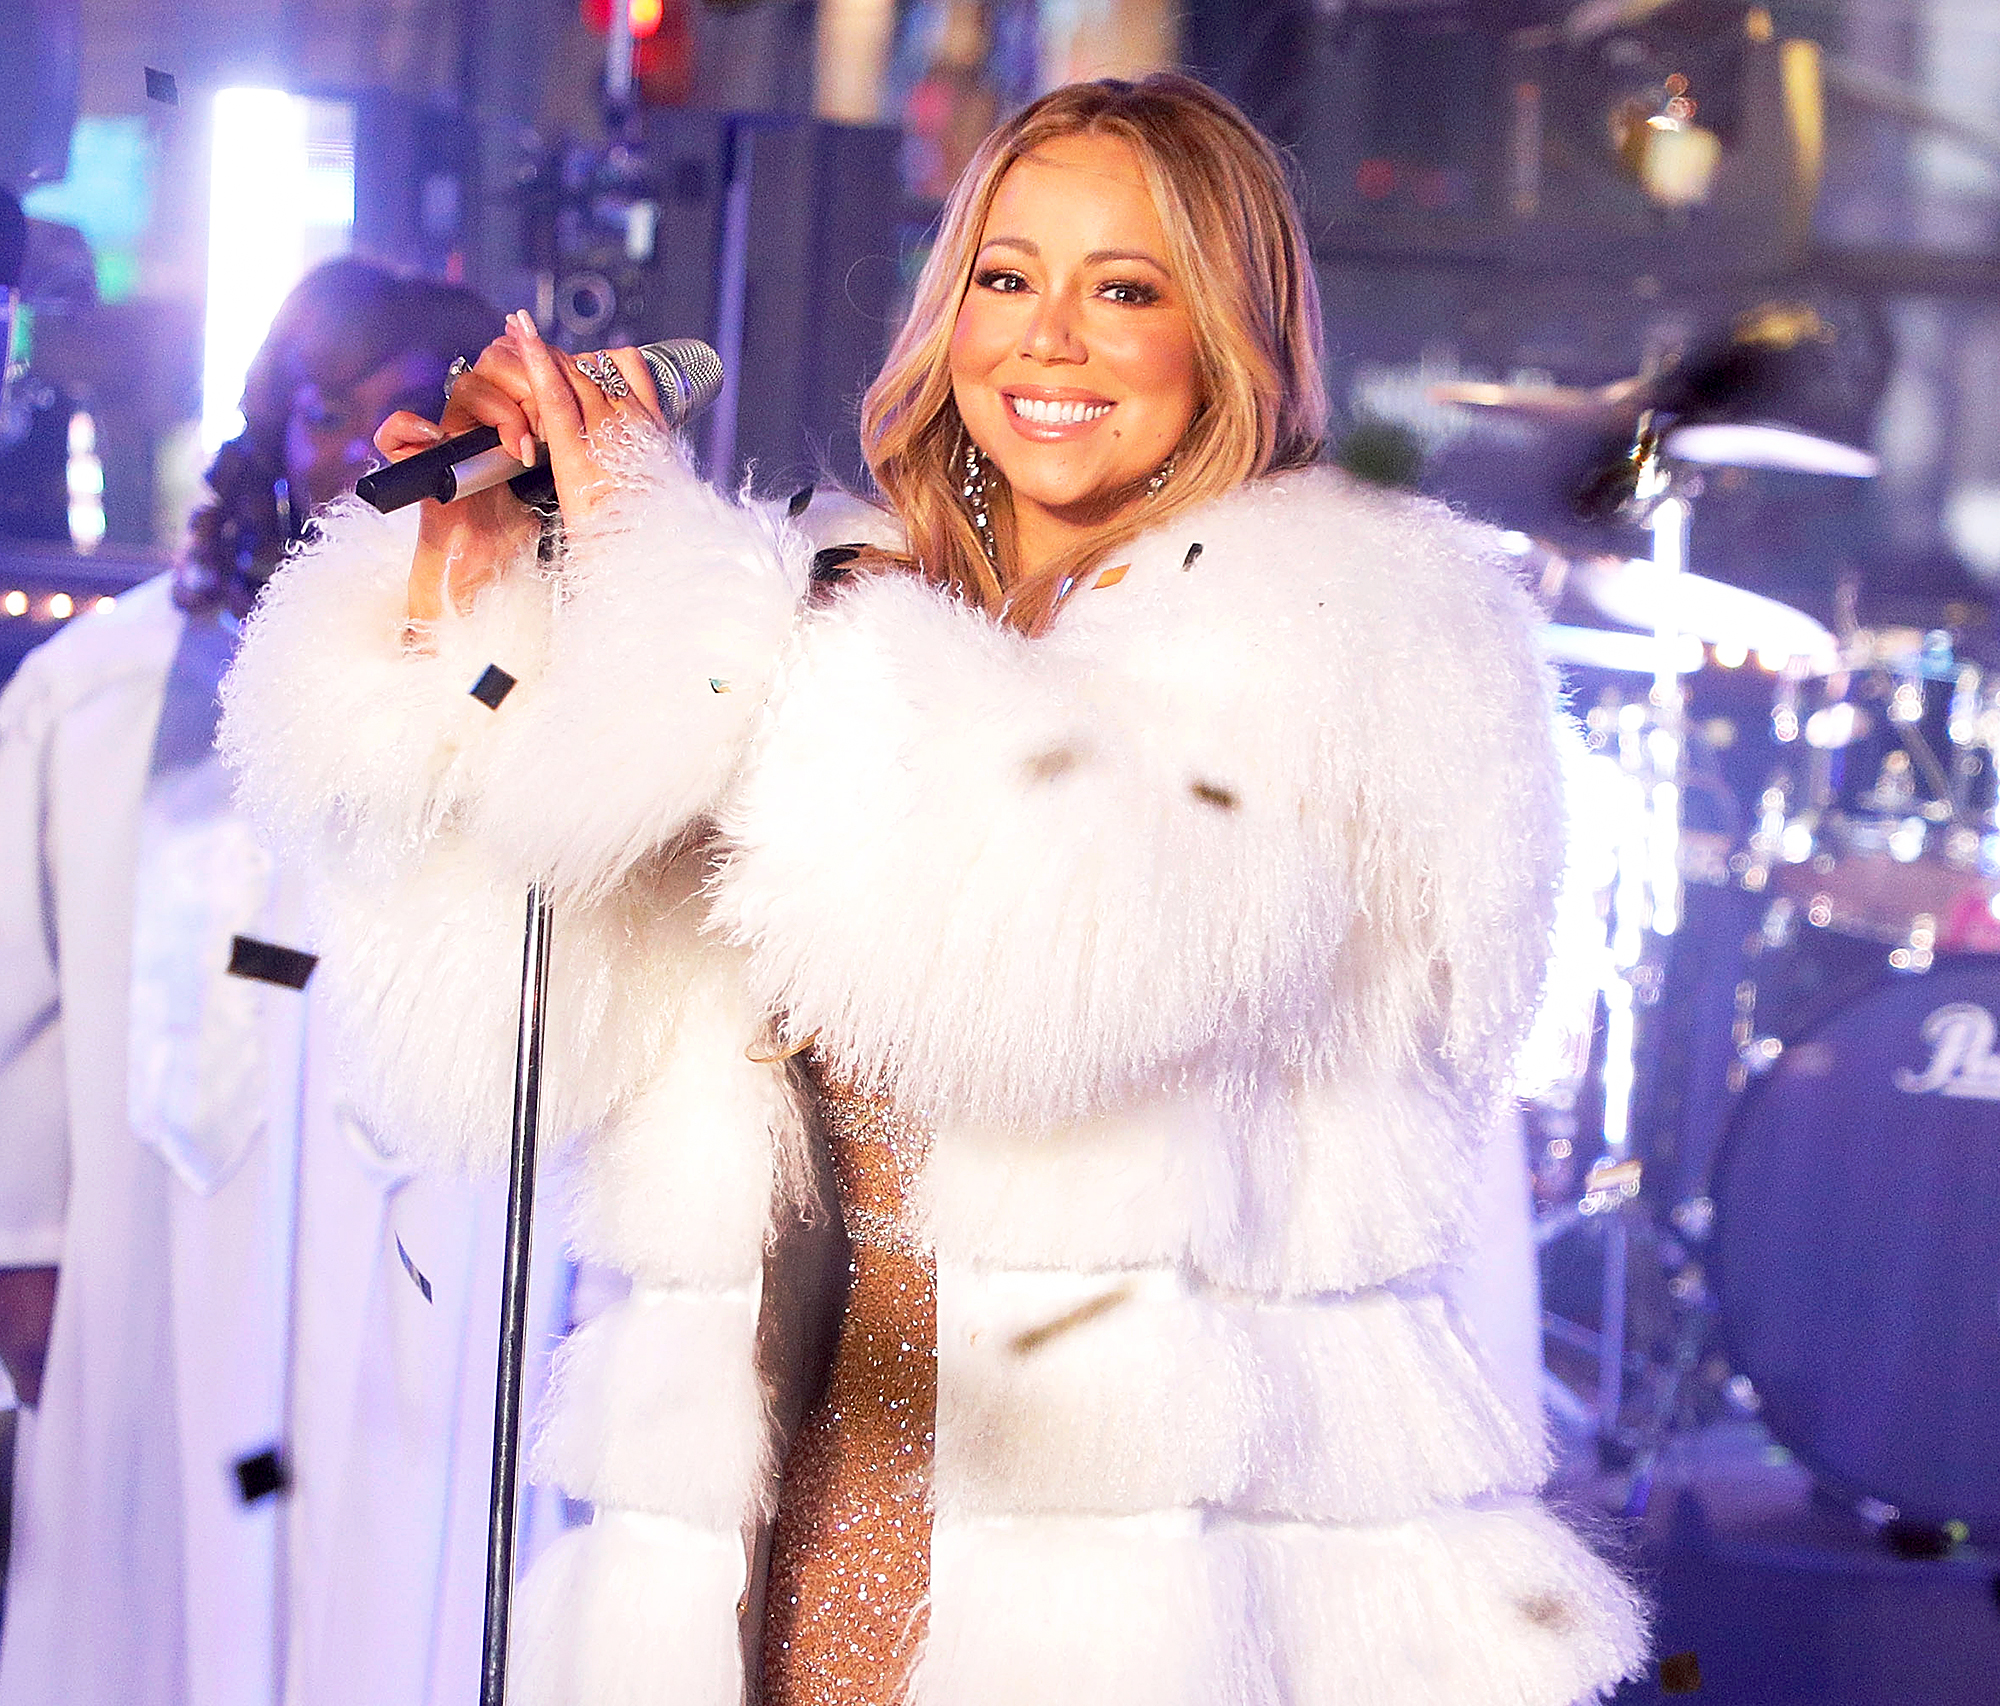 Mariah Carey Finally Got Her Hot Tea on New Year's Eve